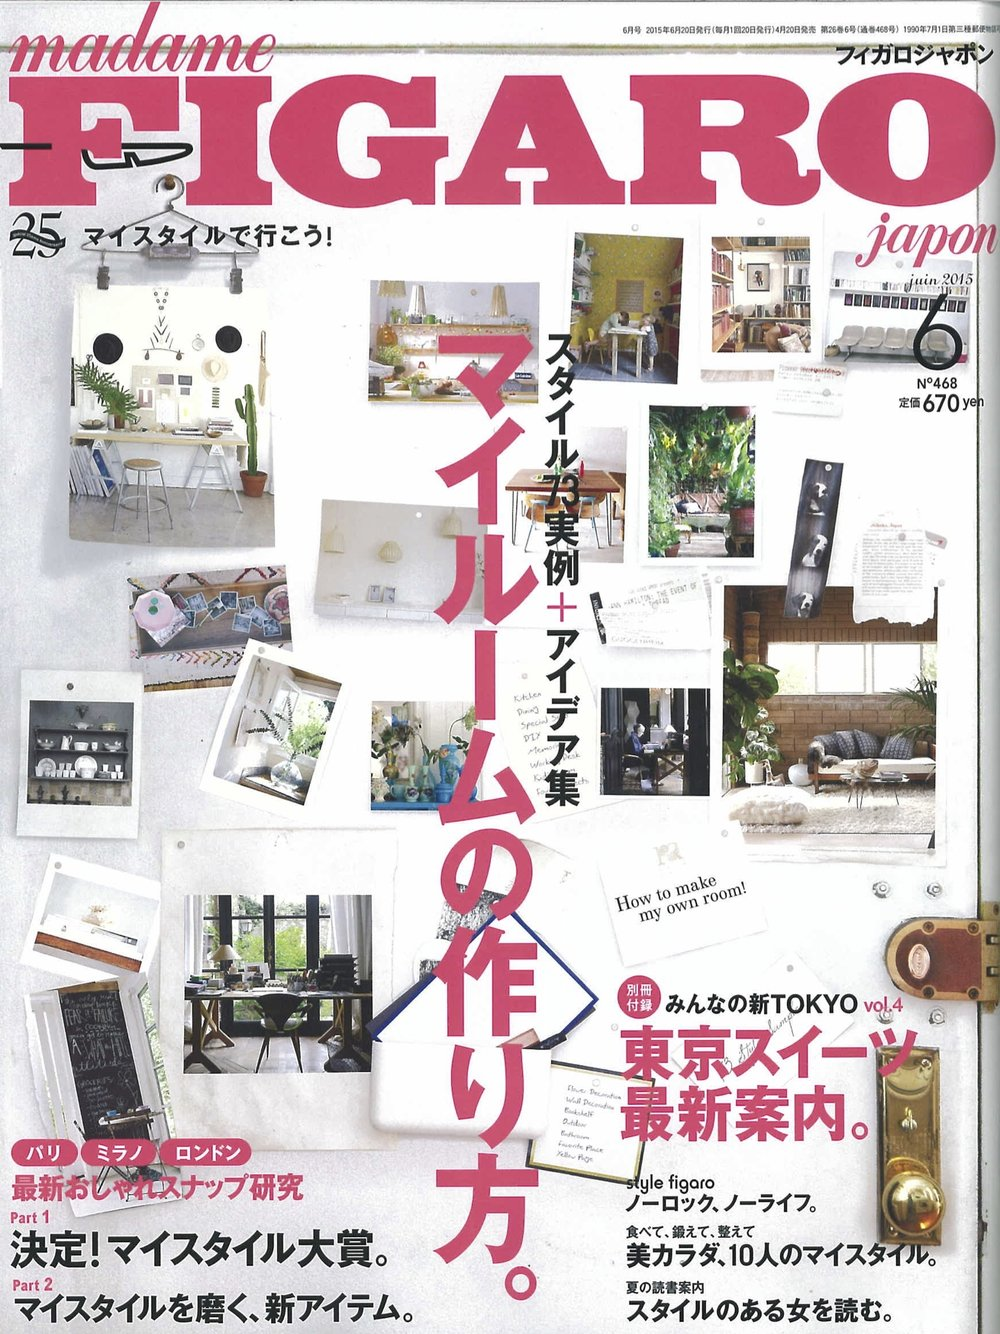 Featured as 'The London House' in Madame Figaro, Japan -